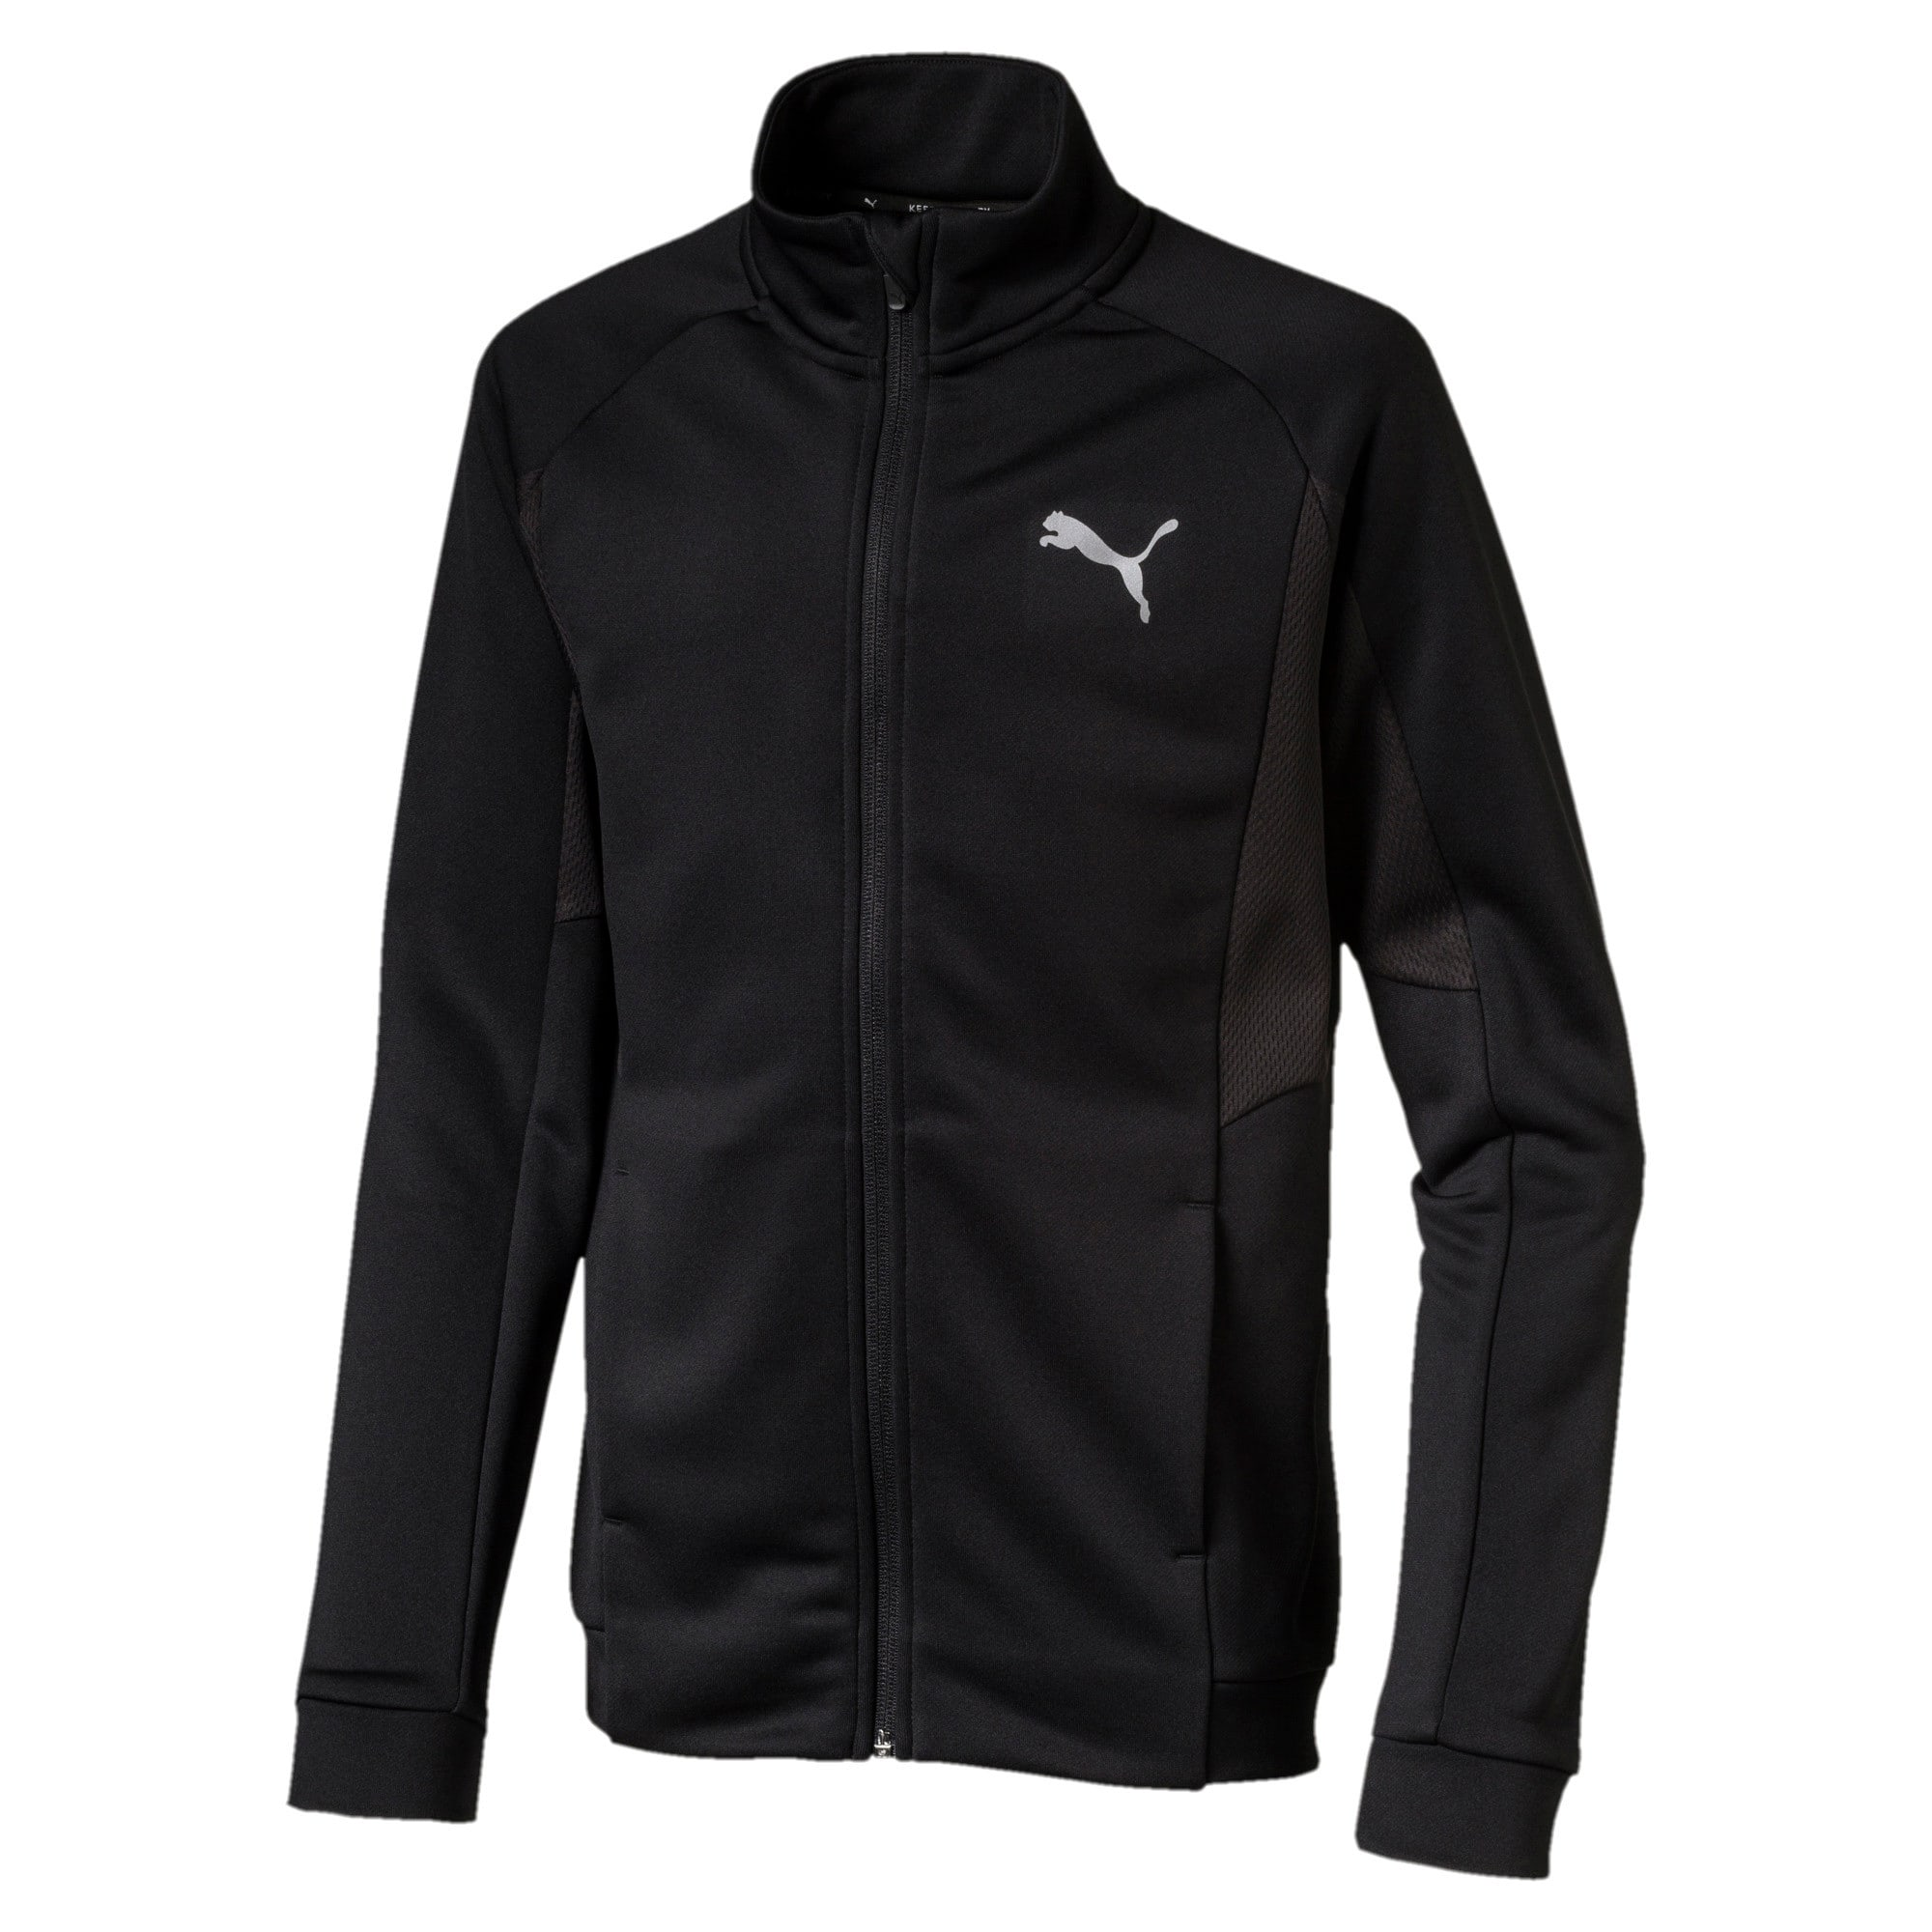 Active Sports Boys' Poly Jacket, Puma Black, large-IND